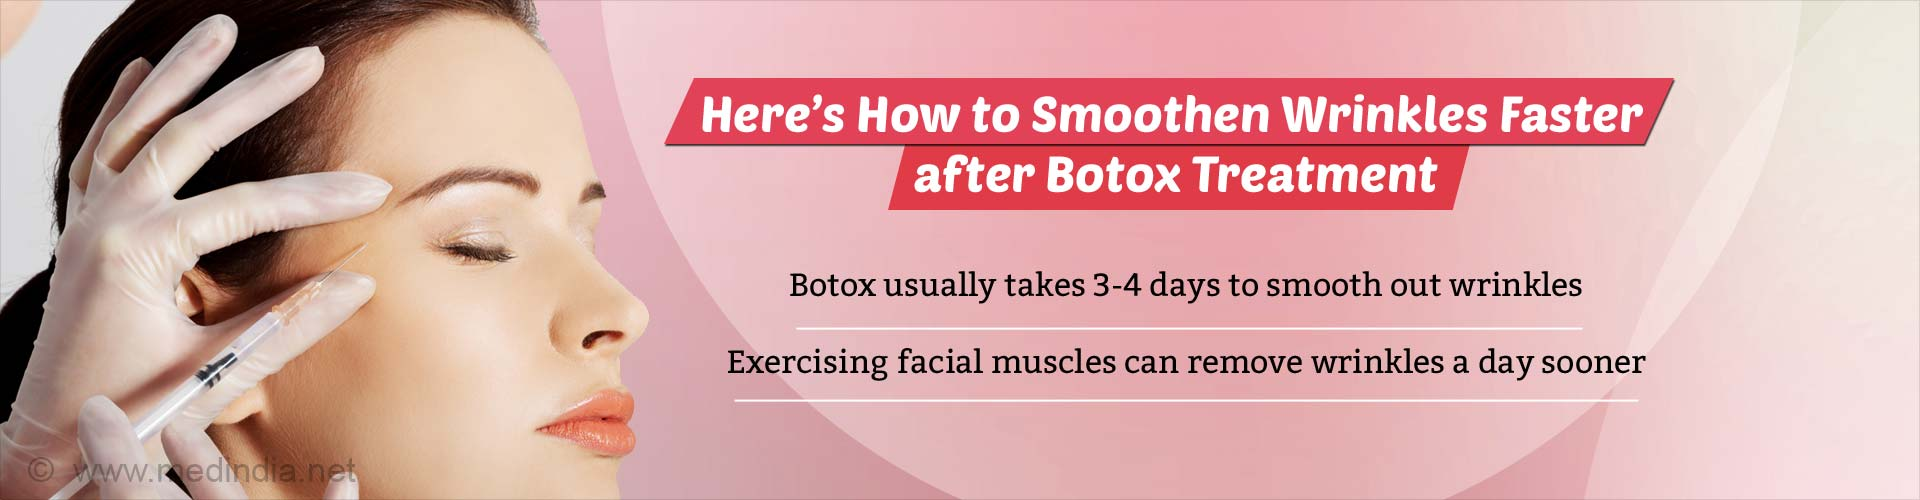 Facial Exercise After Botox Treatment can Smooth Out Wrinkles Faster